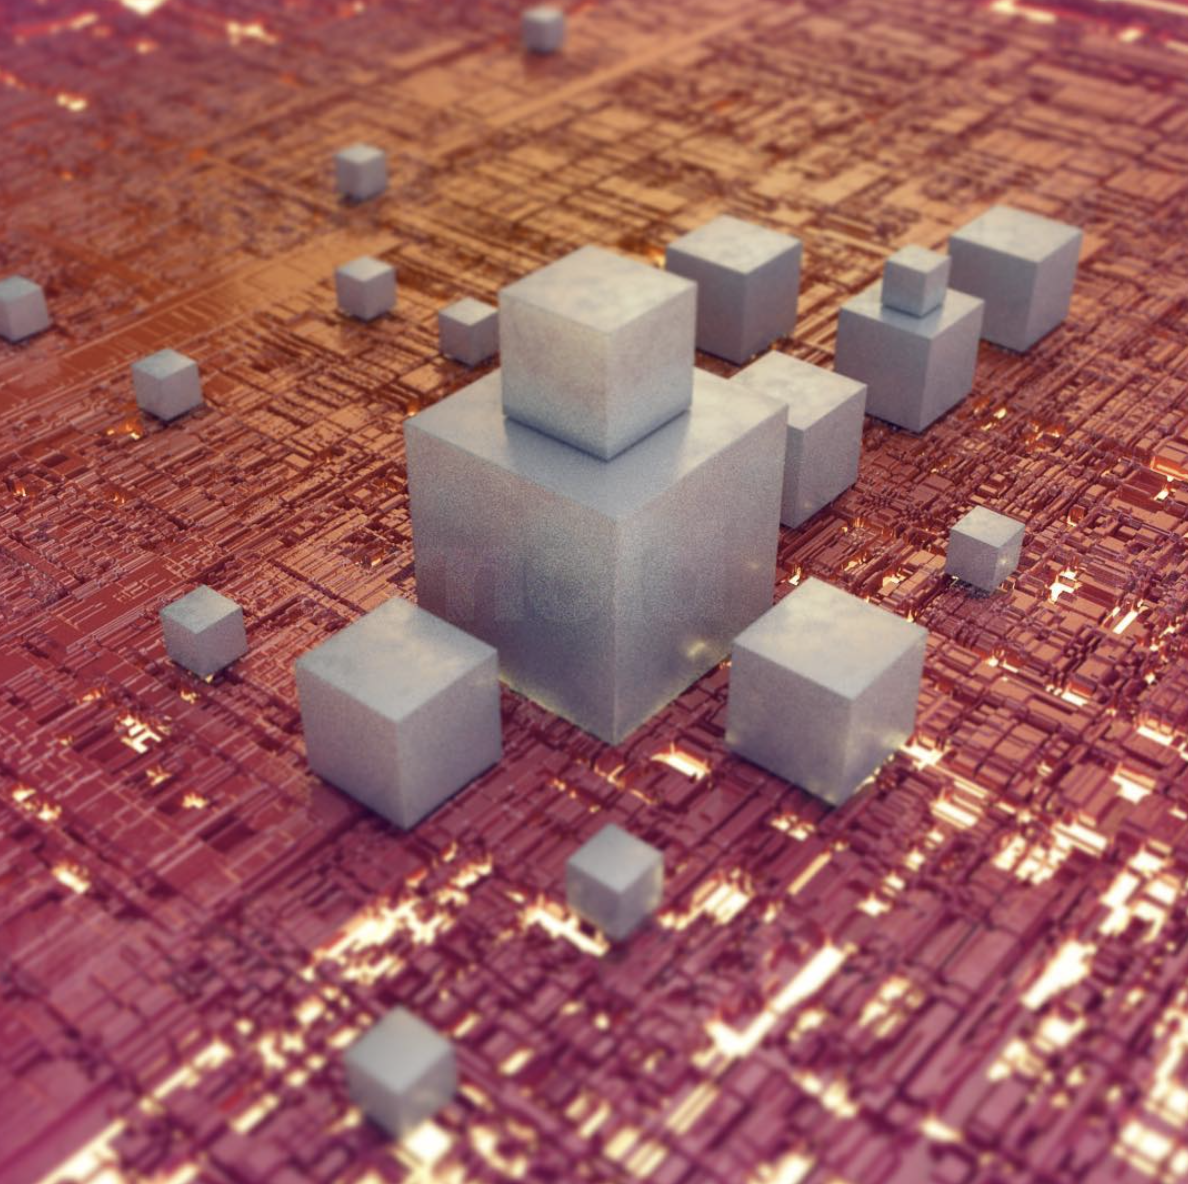 An experiment using displacement in Arnold